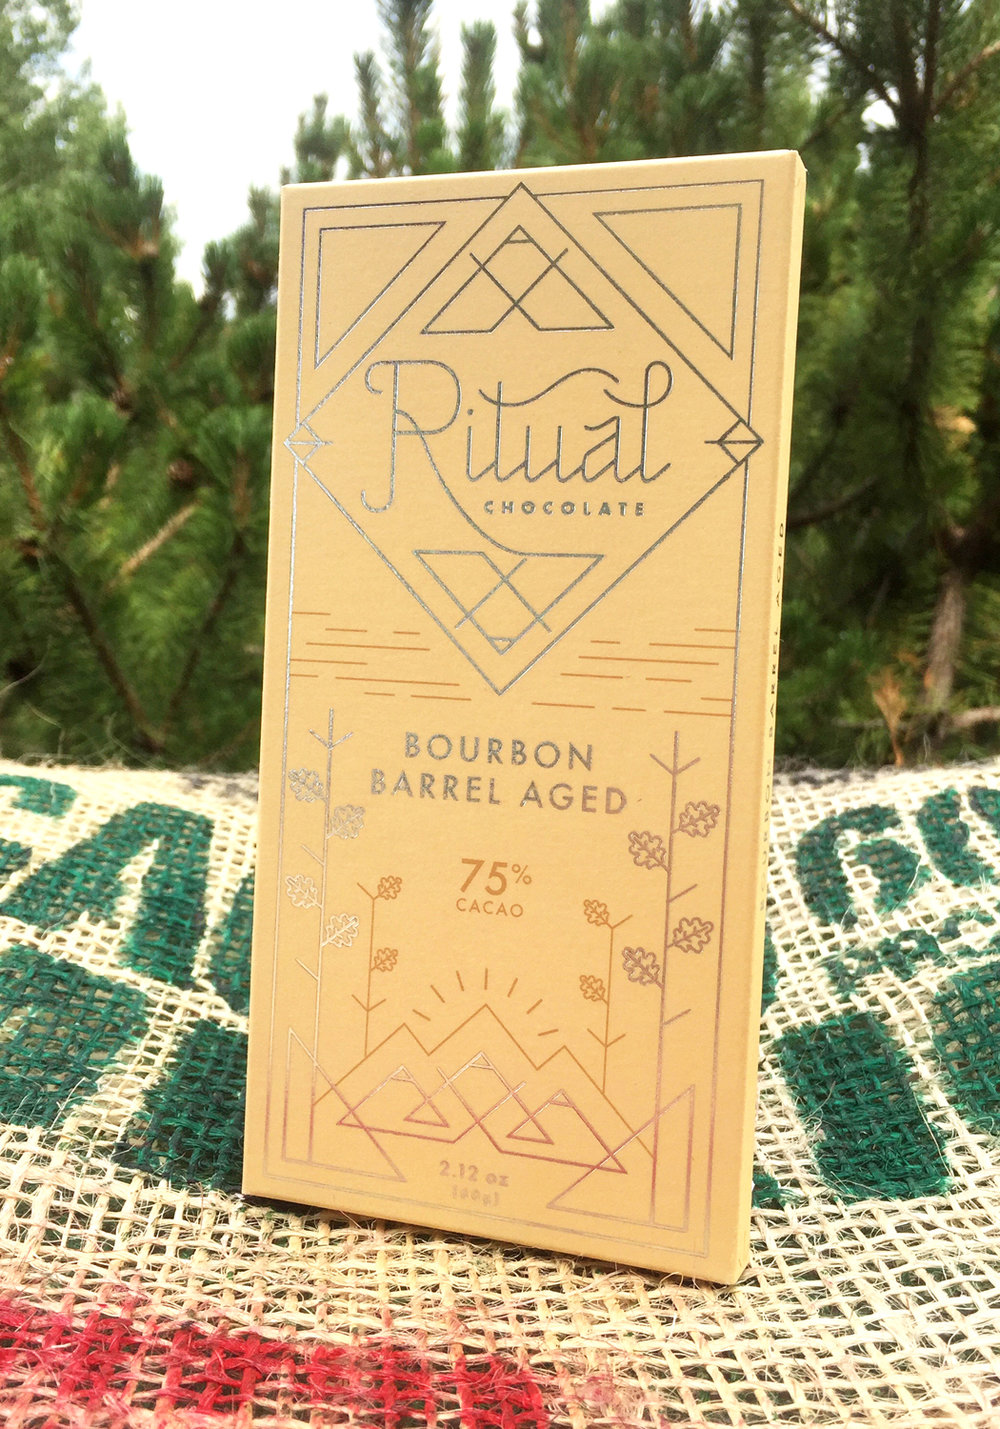 Ritual Chocolate's bourbon barrel aged chocolate